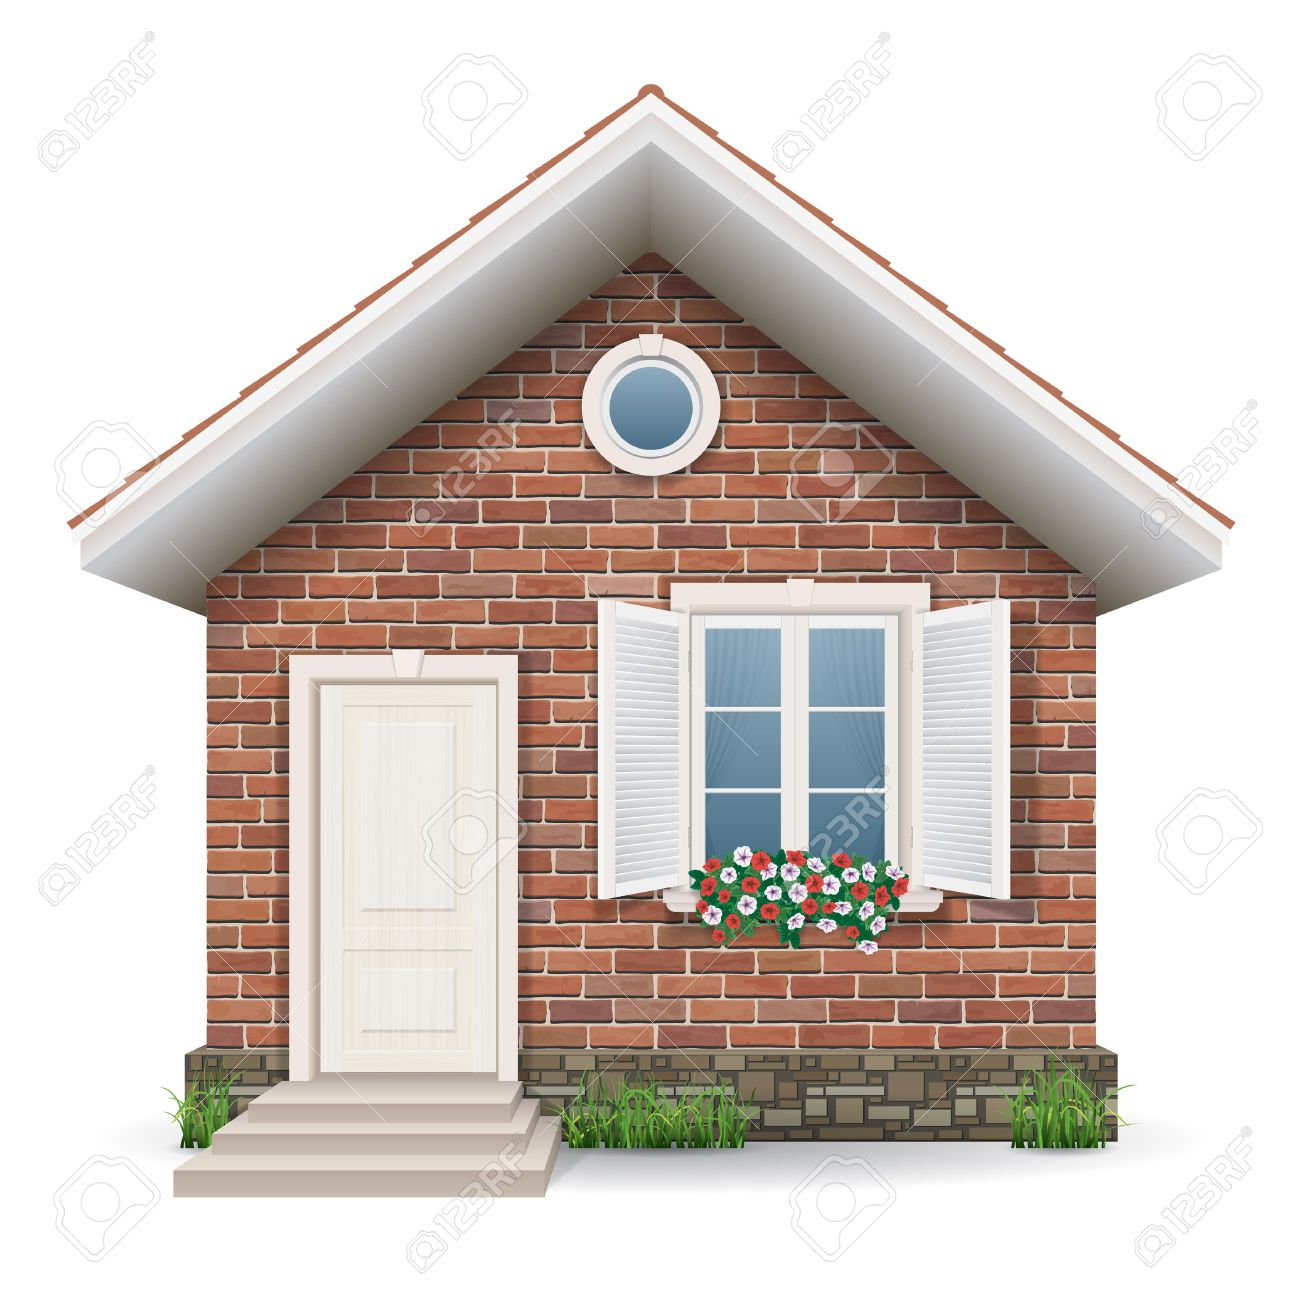 Small brick residential house with a window, door, grass and flower pots. Stock Vector - 39571882